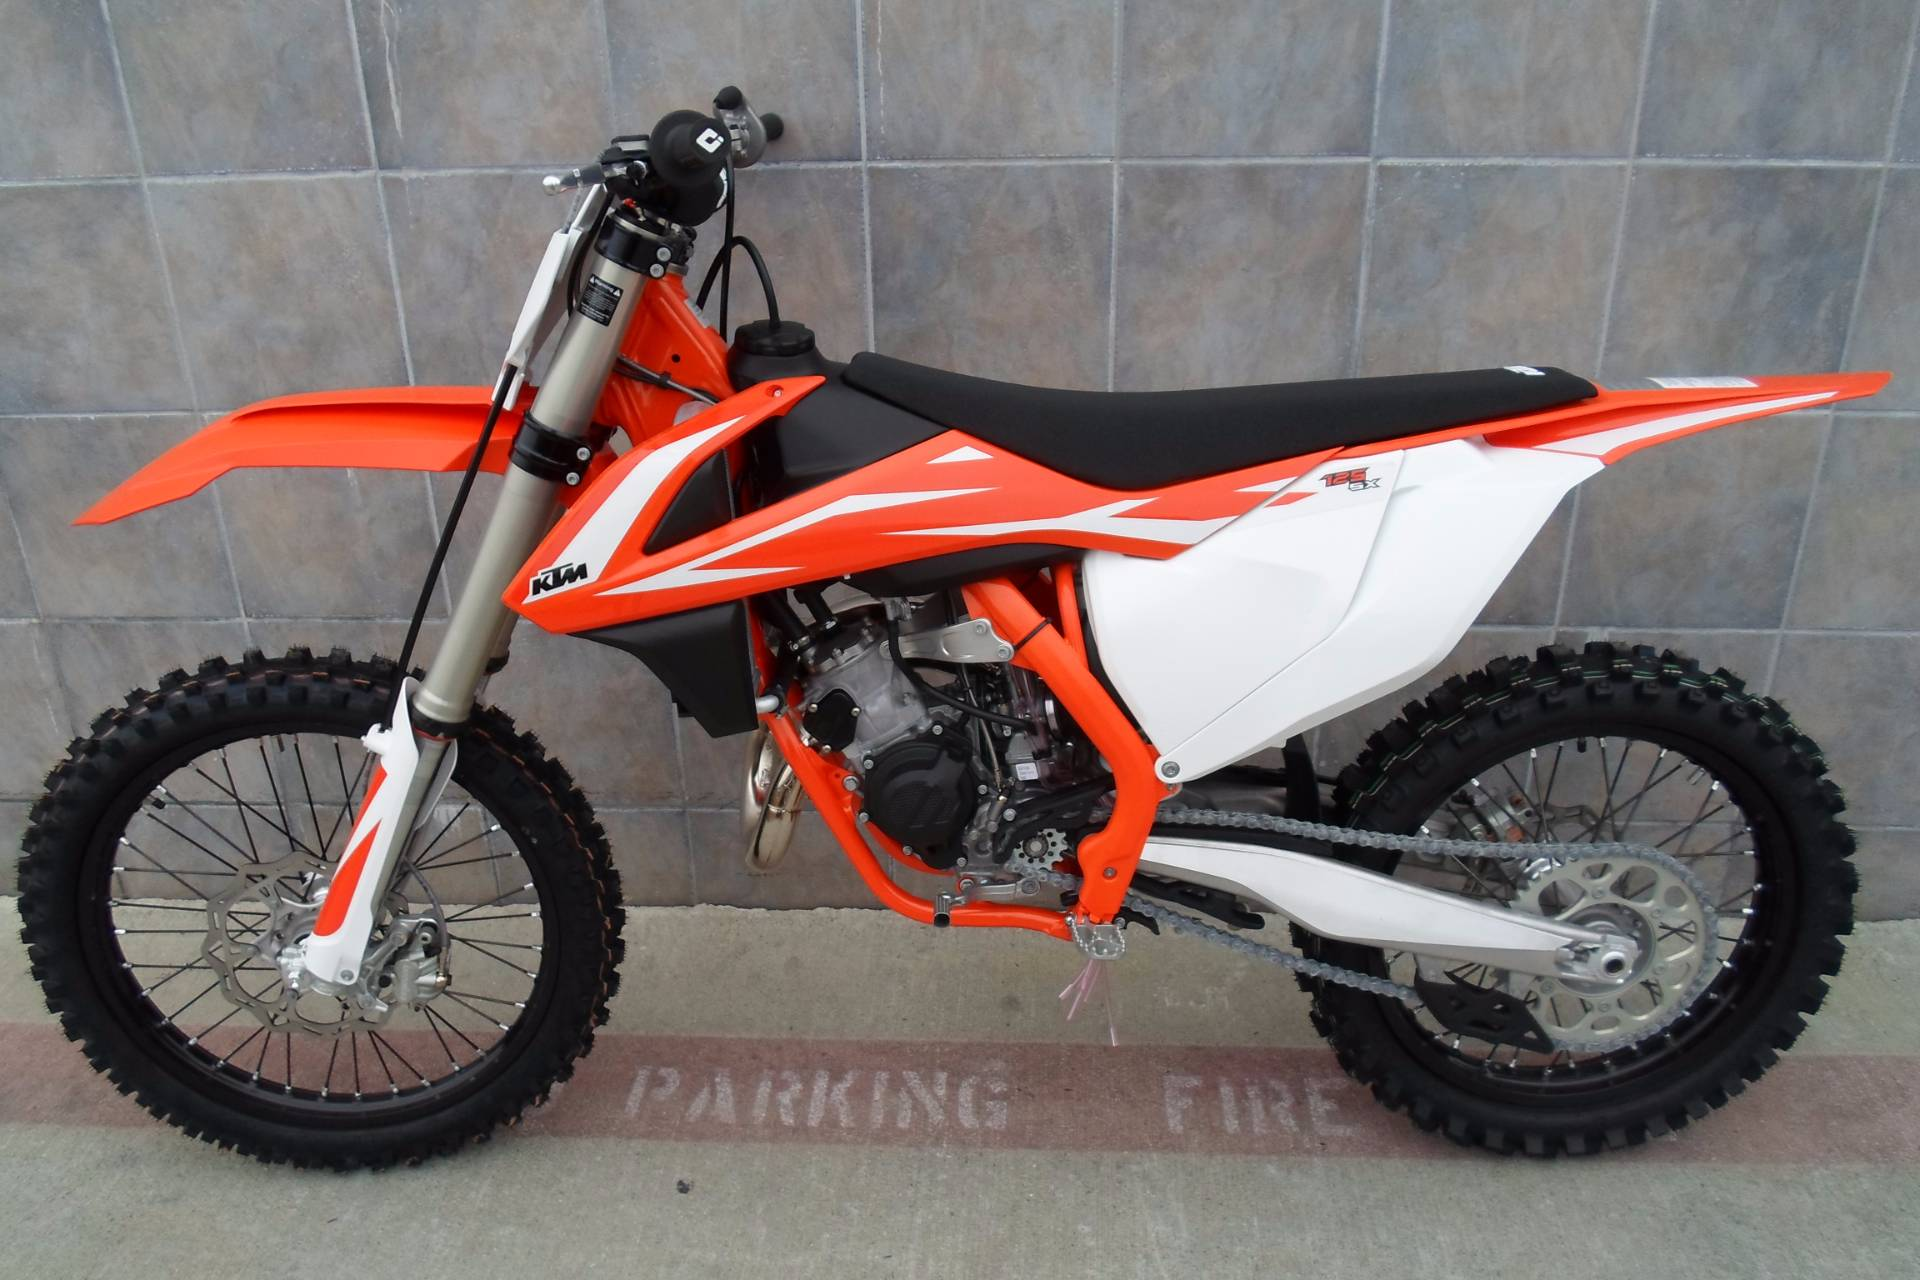 New 2018 KTM 125 SX Motorcycles in San Marcos, CA